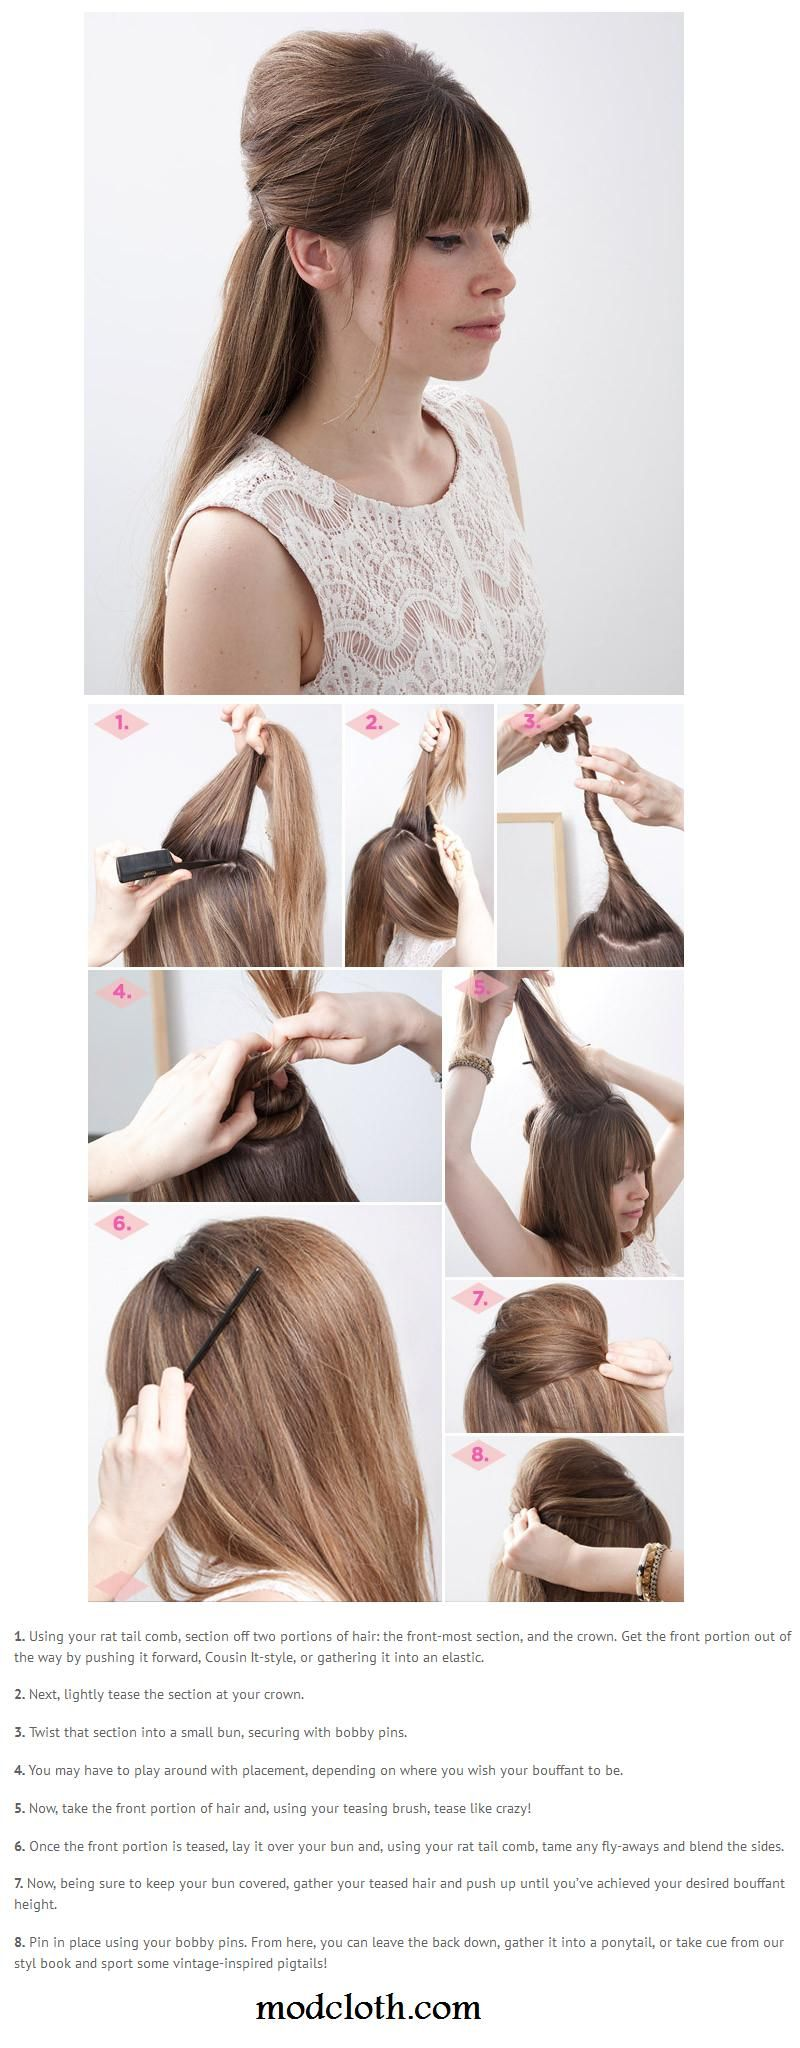 Top long hair tutorials for night out bouffant hair